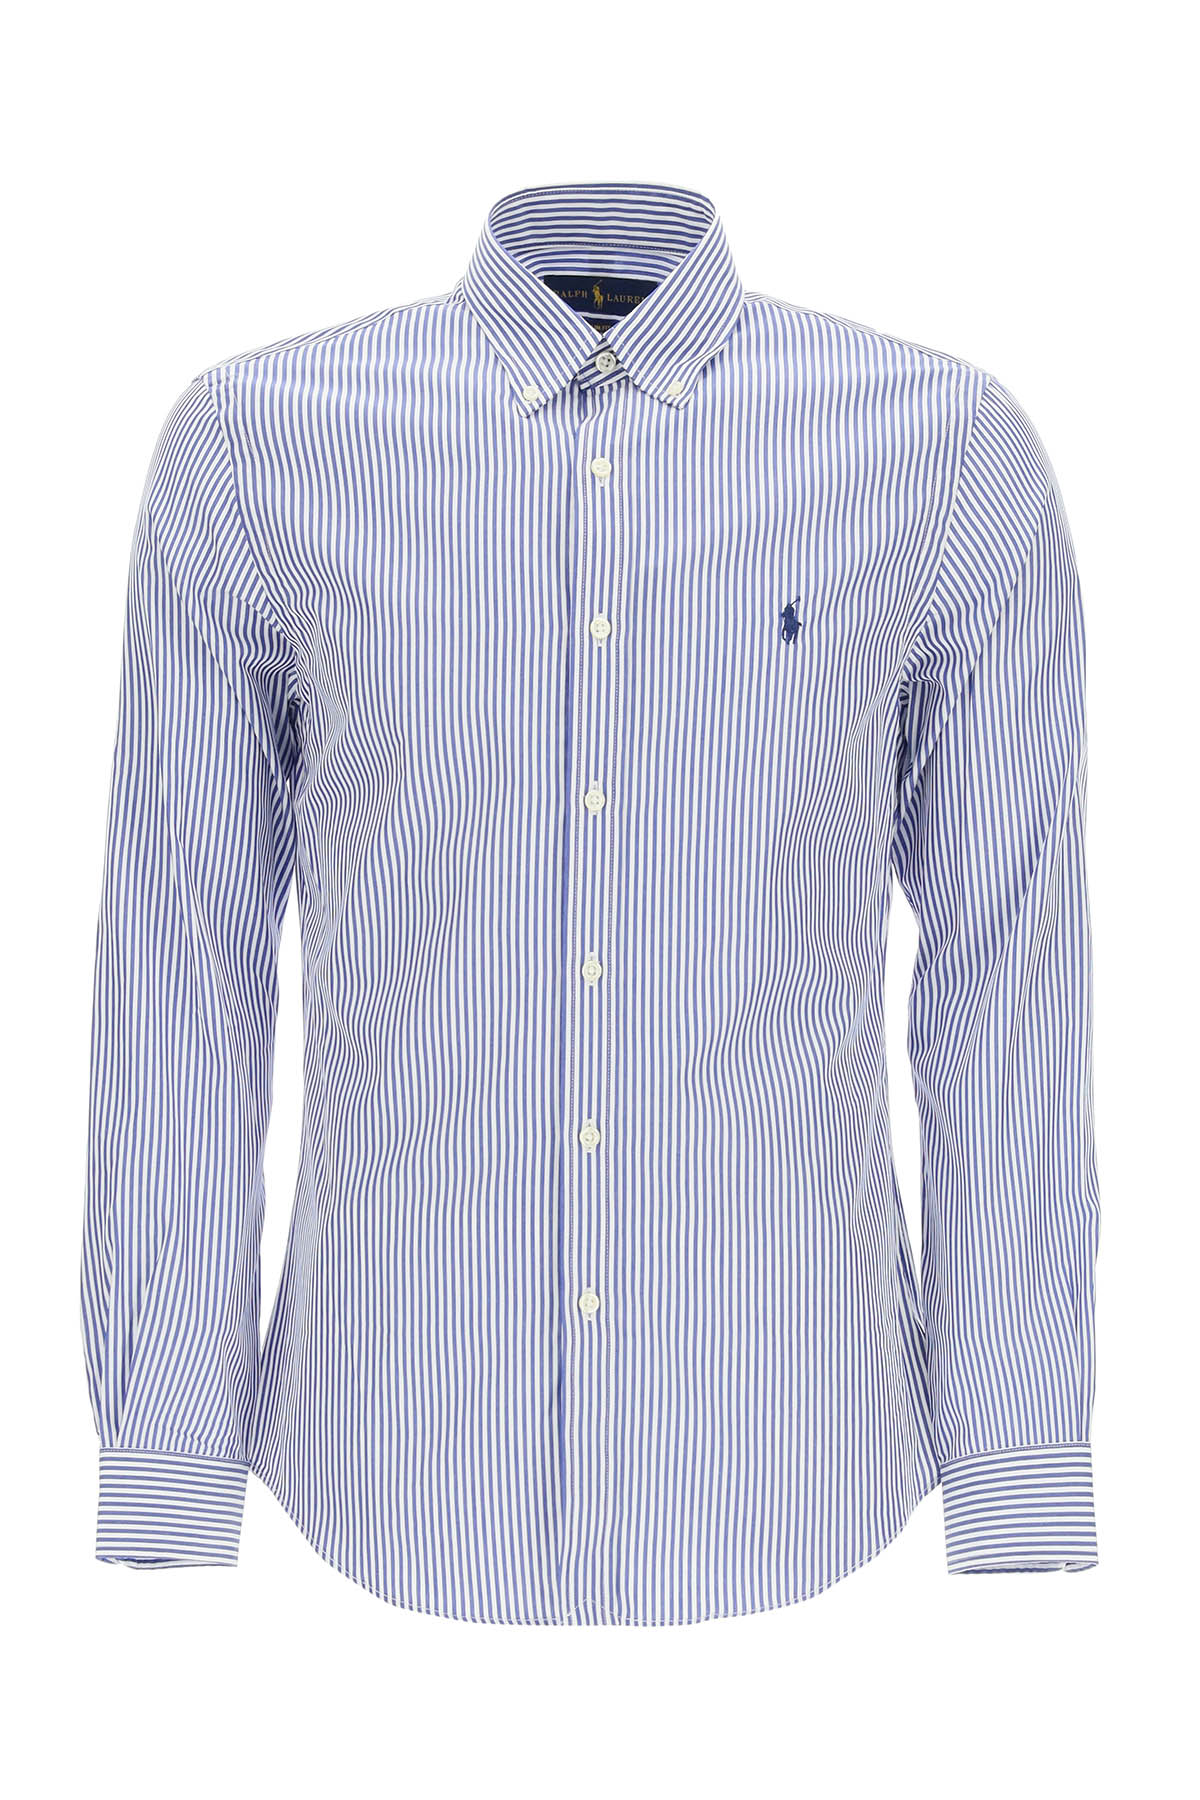 Polo Ralph Lauren Cottons STRIPED COTTON SHIRT